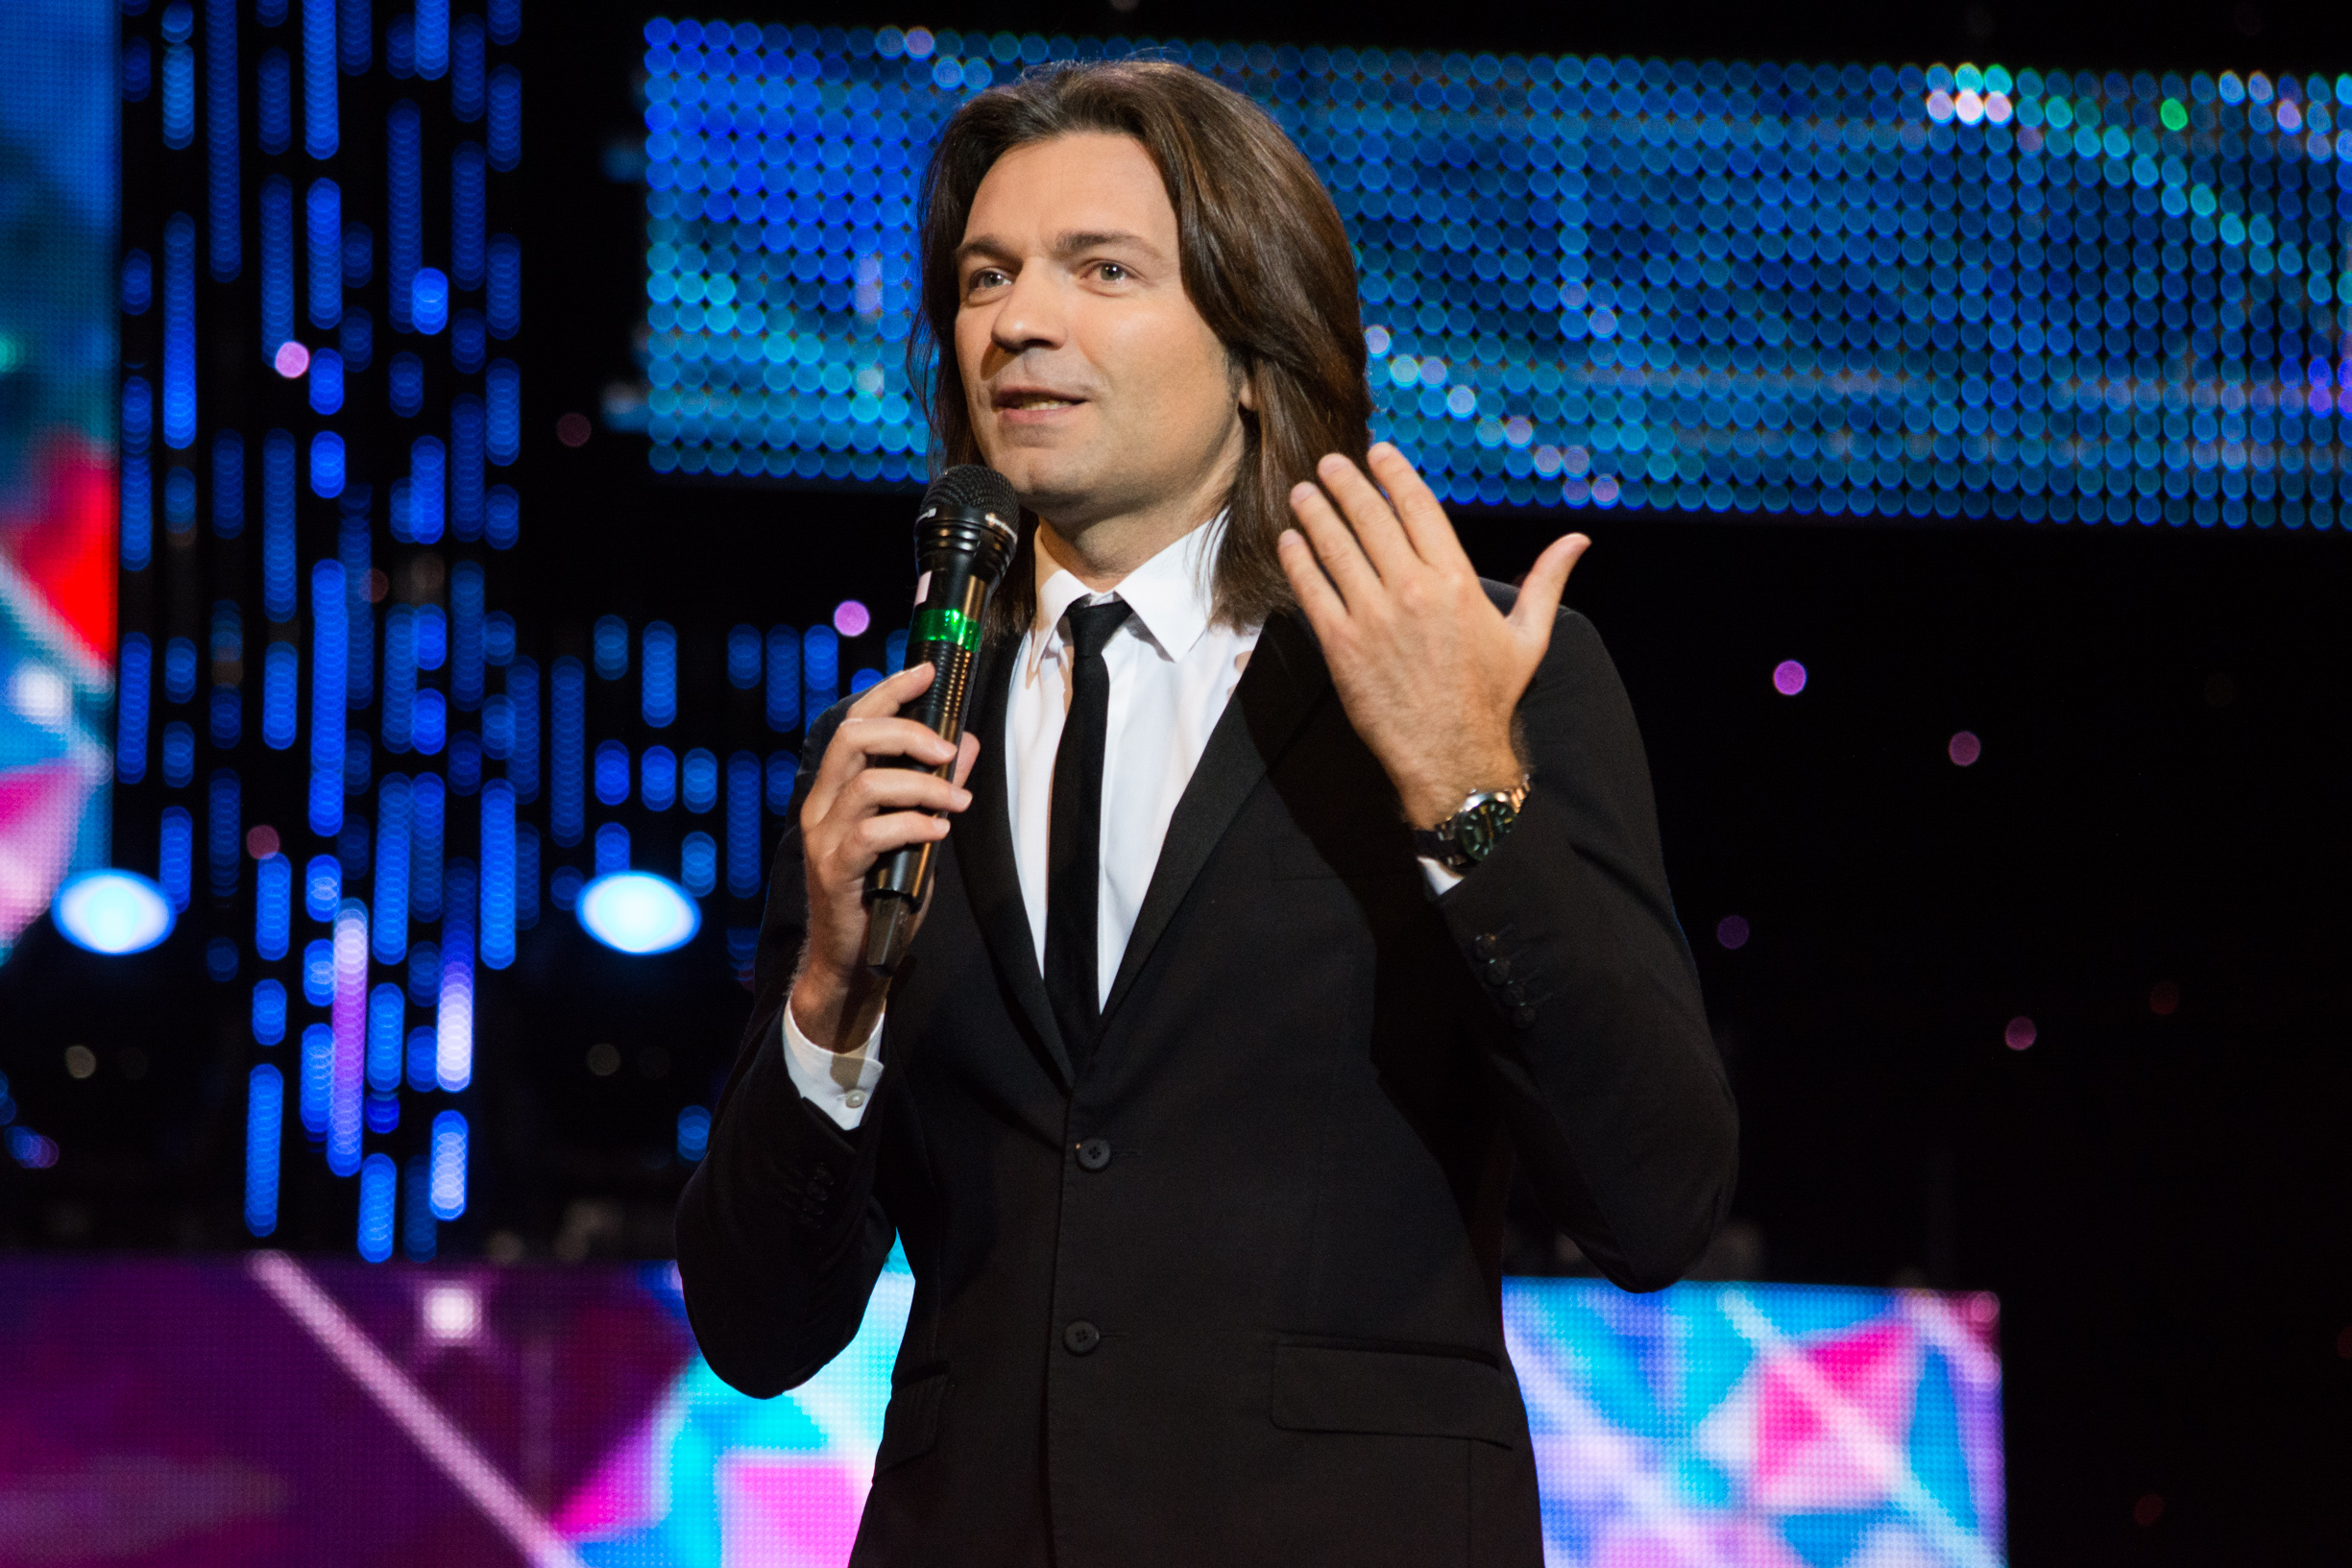 Biography Malikov Dmitriy - a successful singer, composer and producer